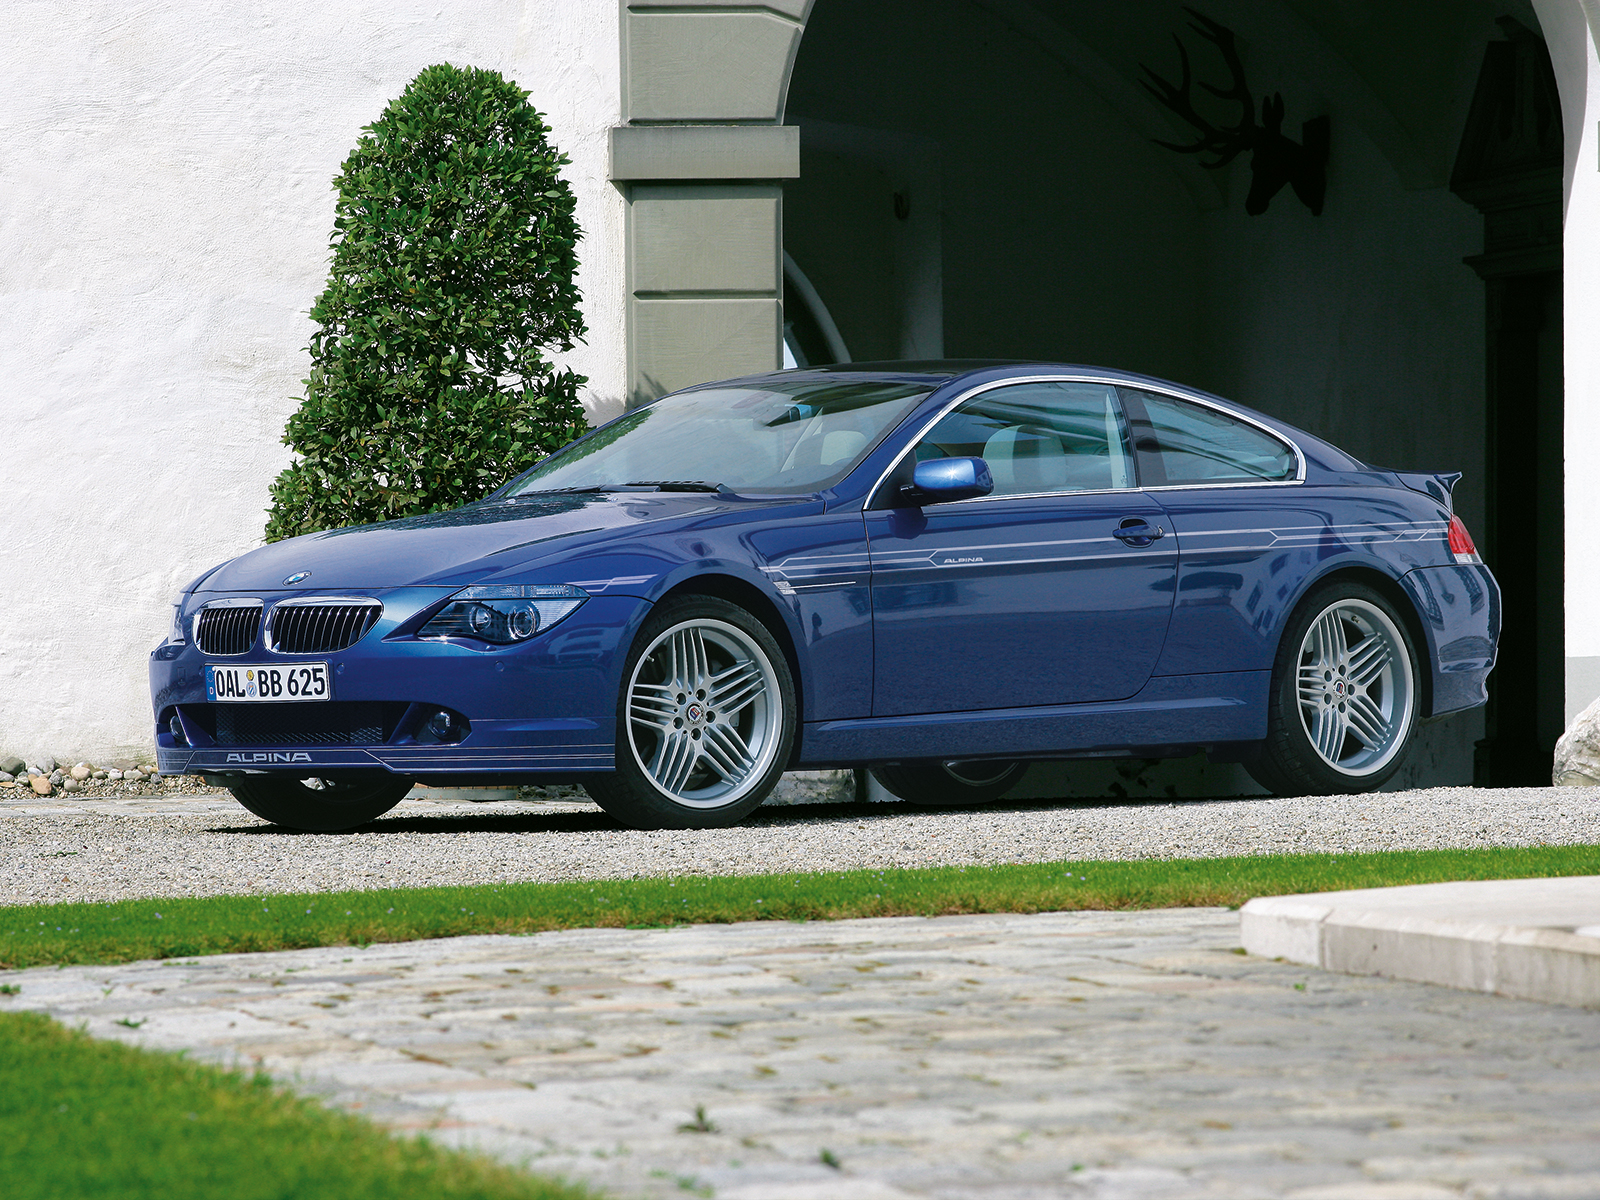 BMW Series E ALPINA Automobiles - Alpina bmw b6